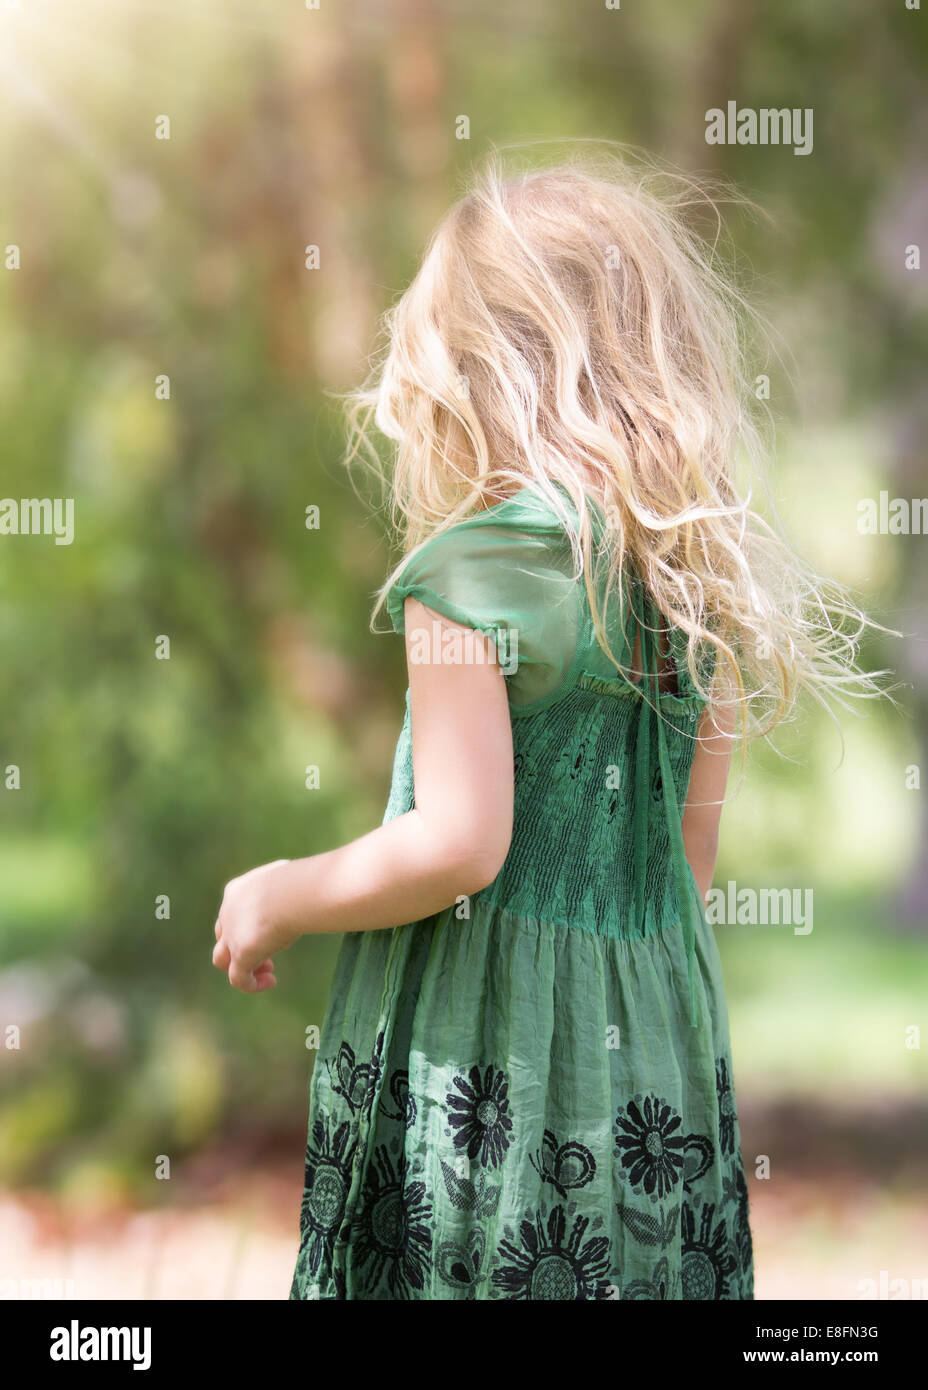 Rear view of girl (4-5) wearing green dress - Stock Image